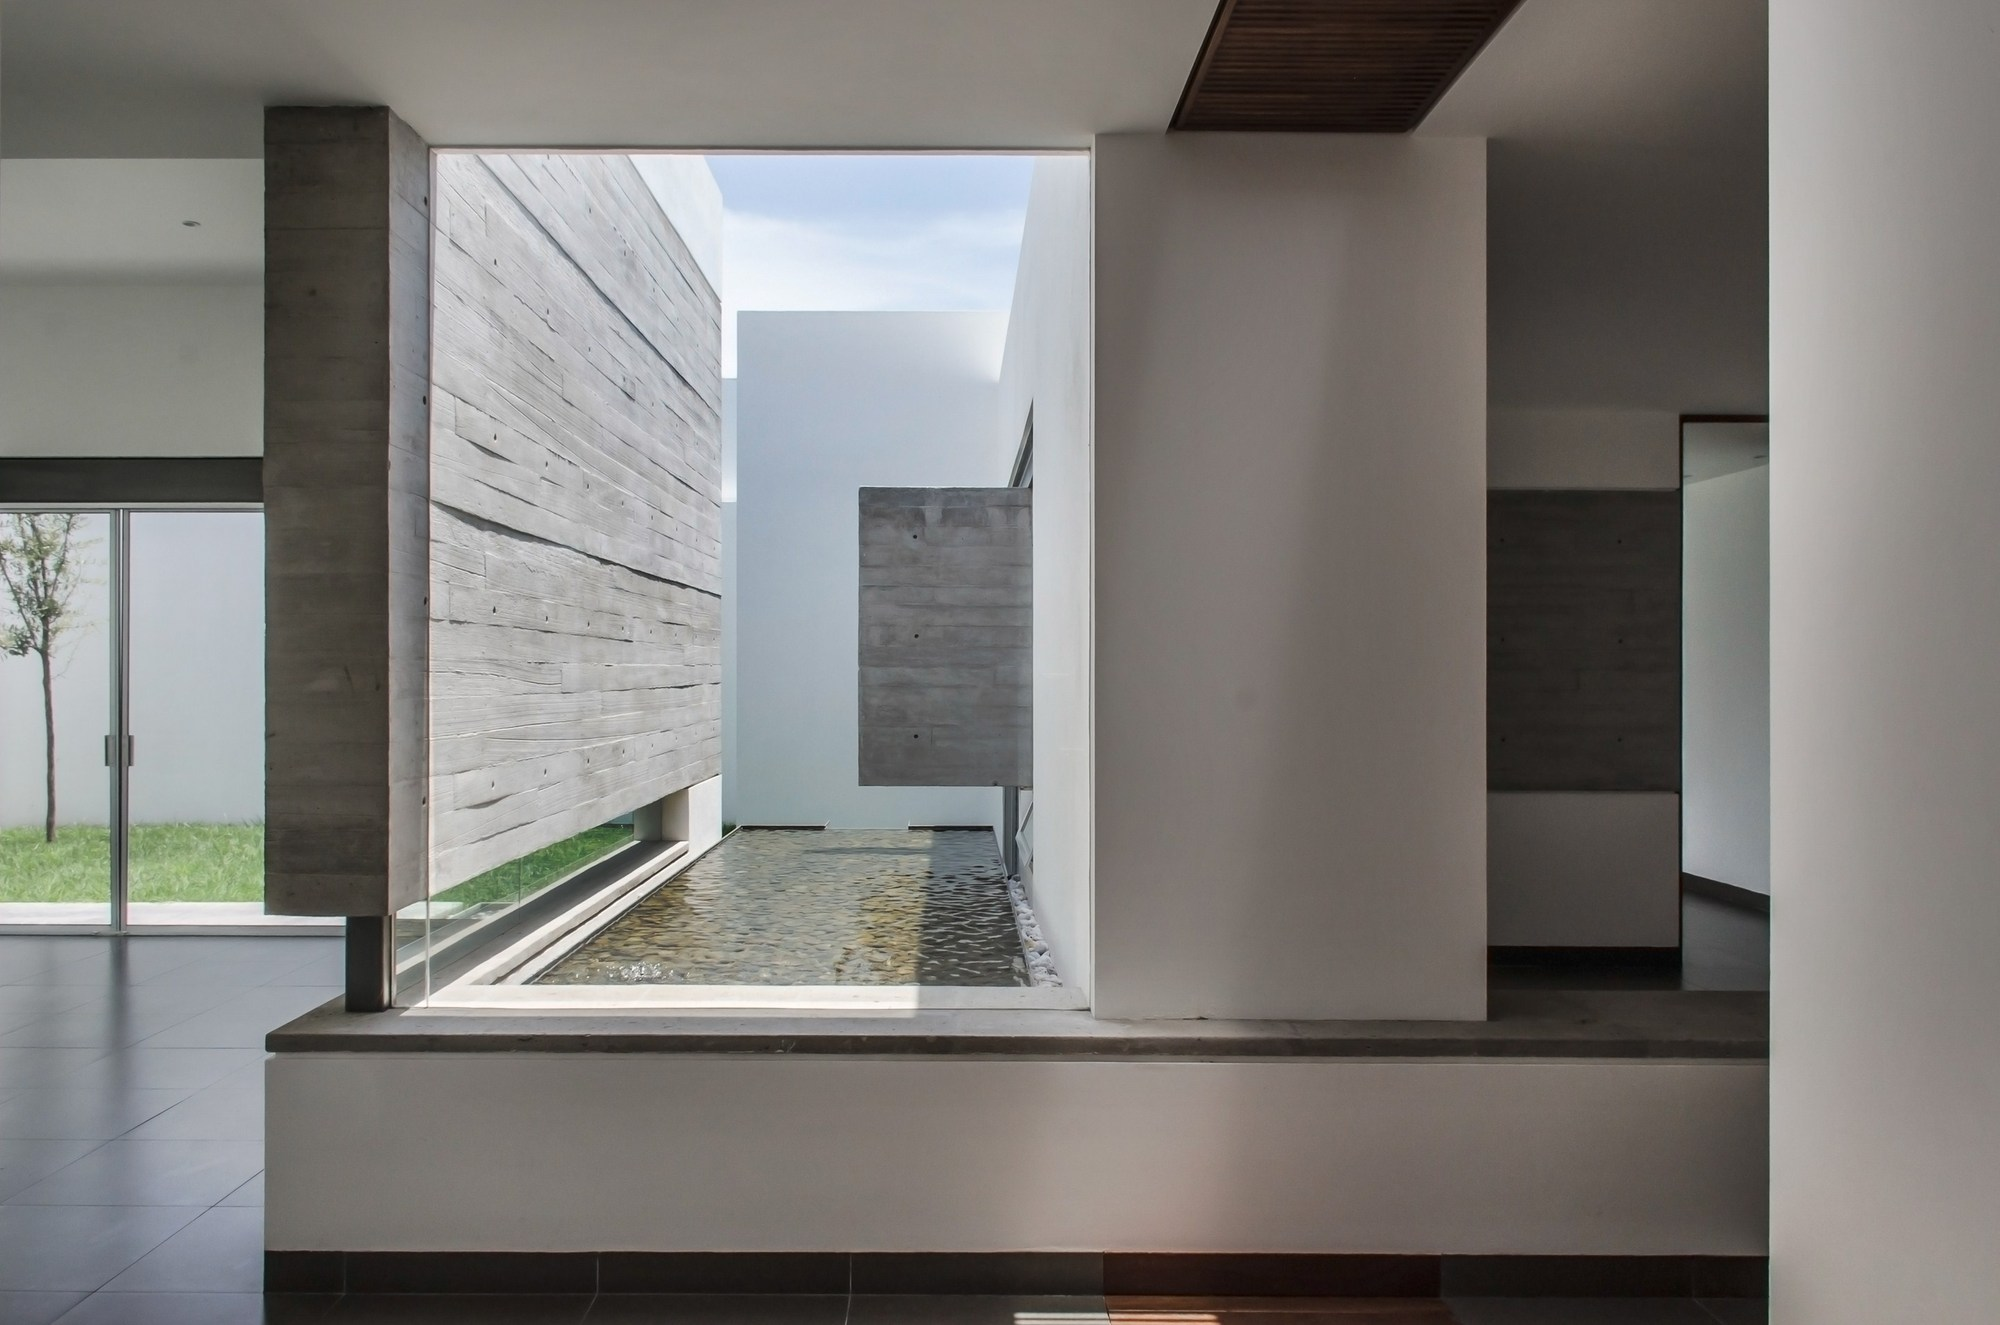 Gallery of t02 adi arquitectura y dise o interior 7 - Arquitectura o diseno de interiores ...